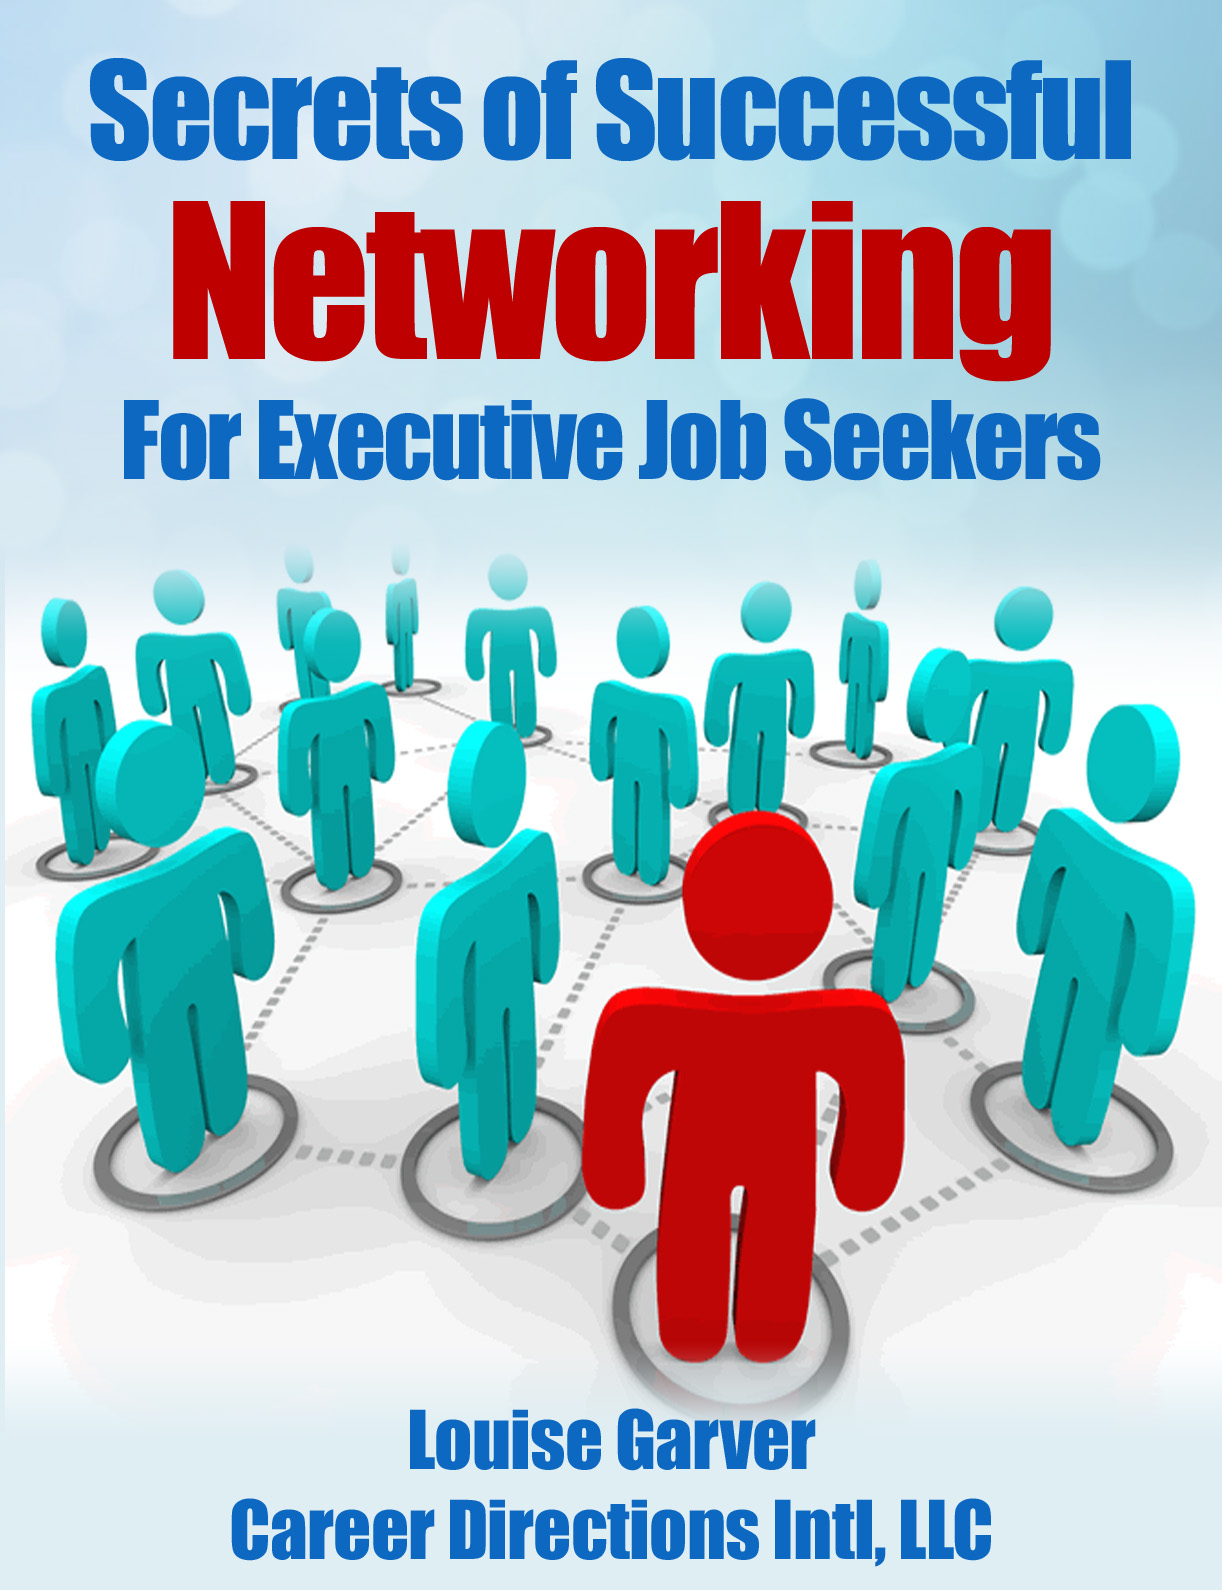 Secrets of Successful Networking For Executive Job Seekers